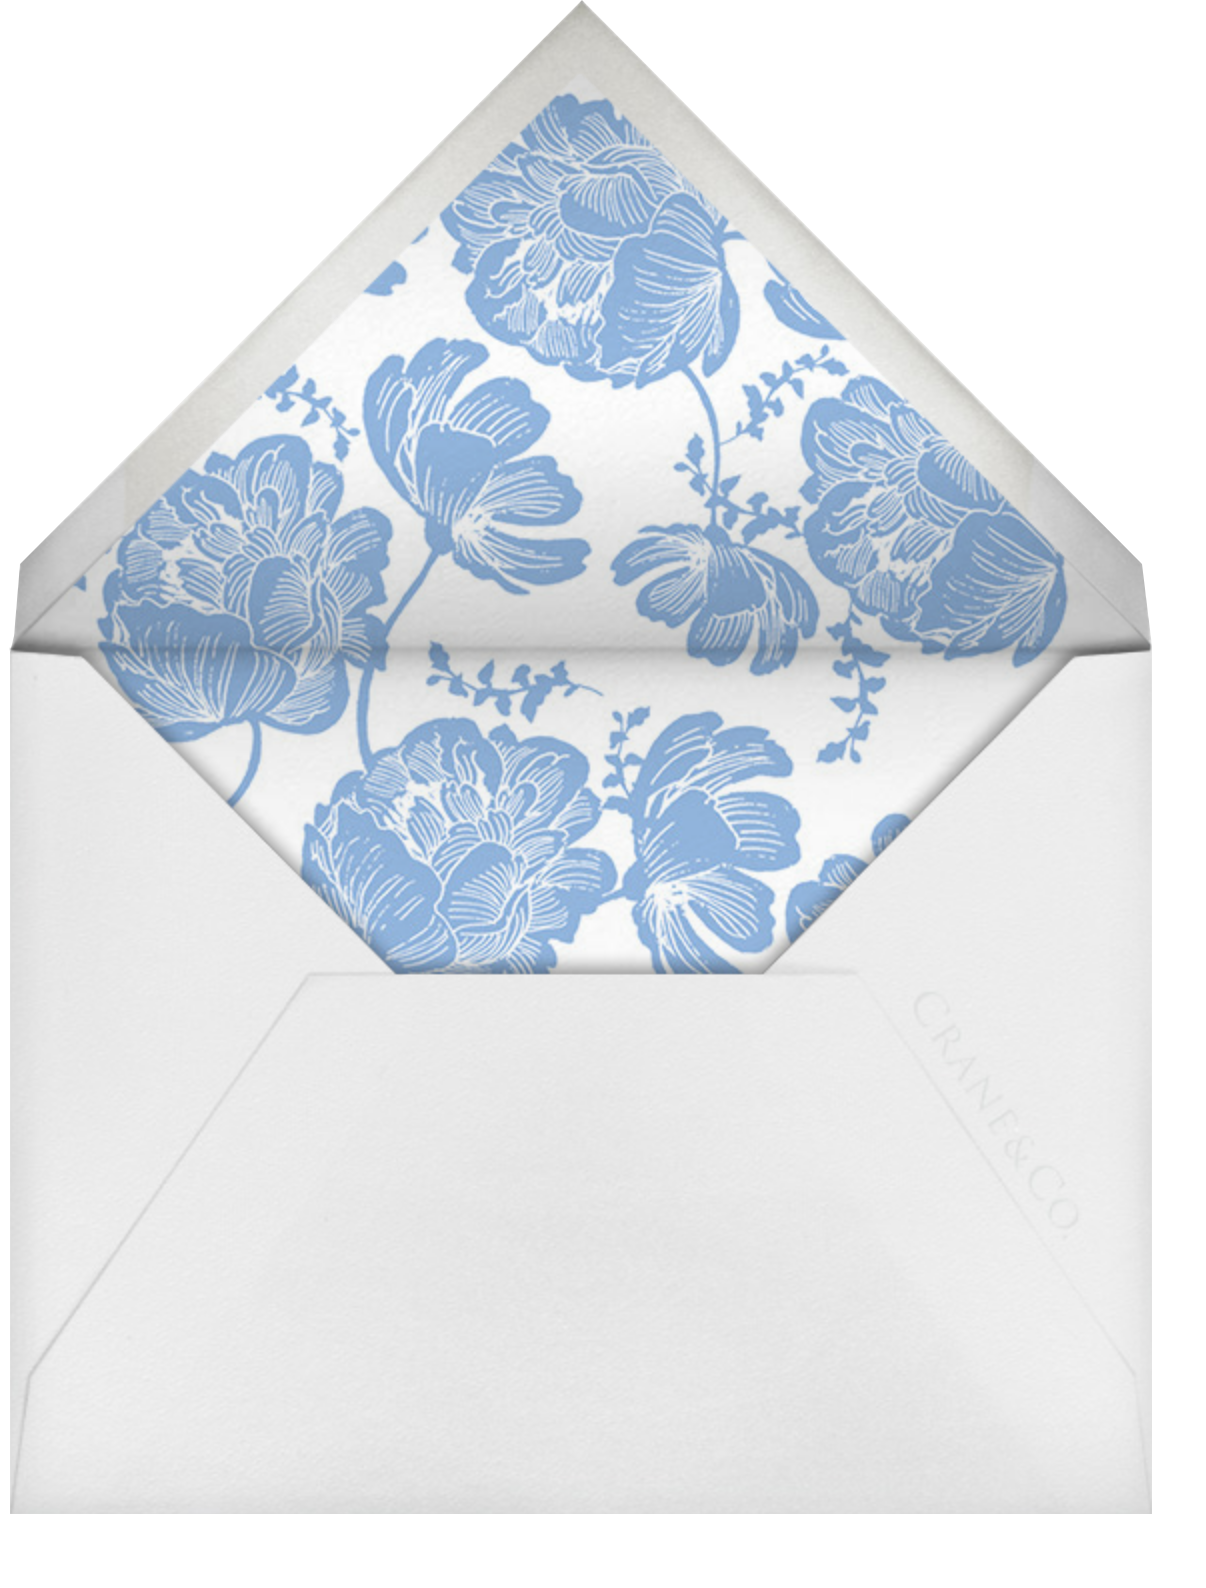 Audrey I (Thank You) - Newport Blue - Paperless Post - Personalized stationery - envelope back